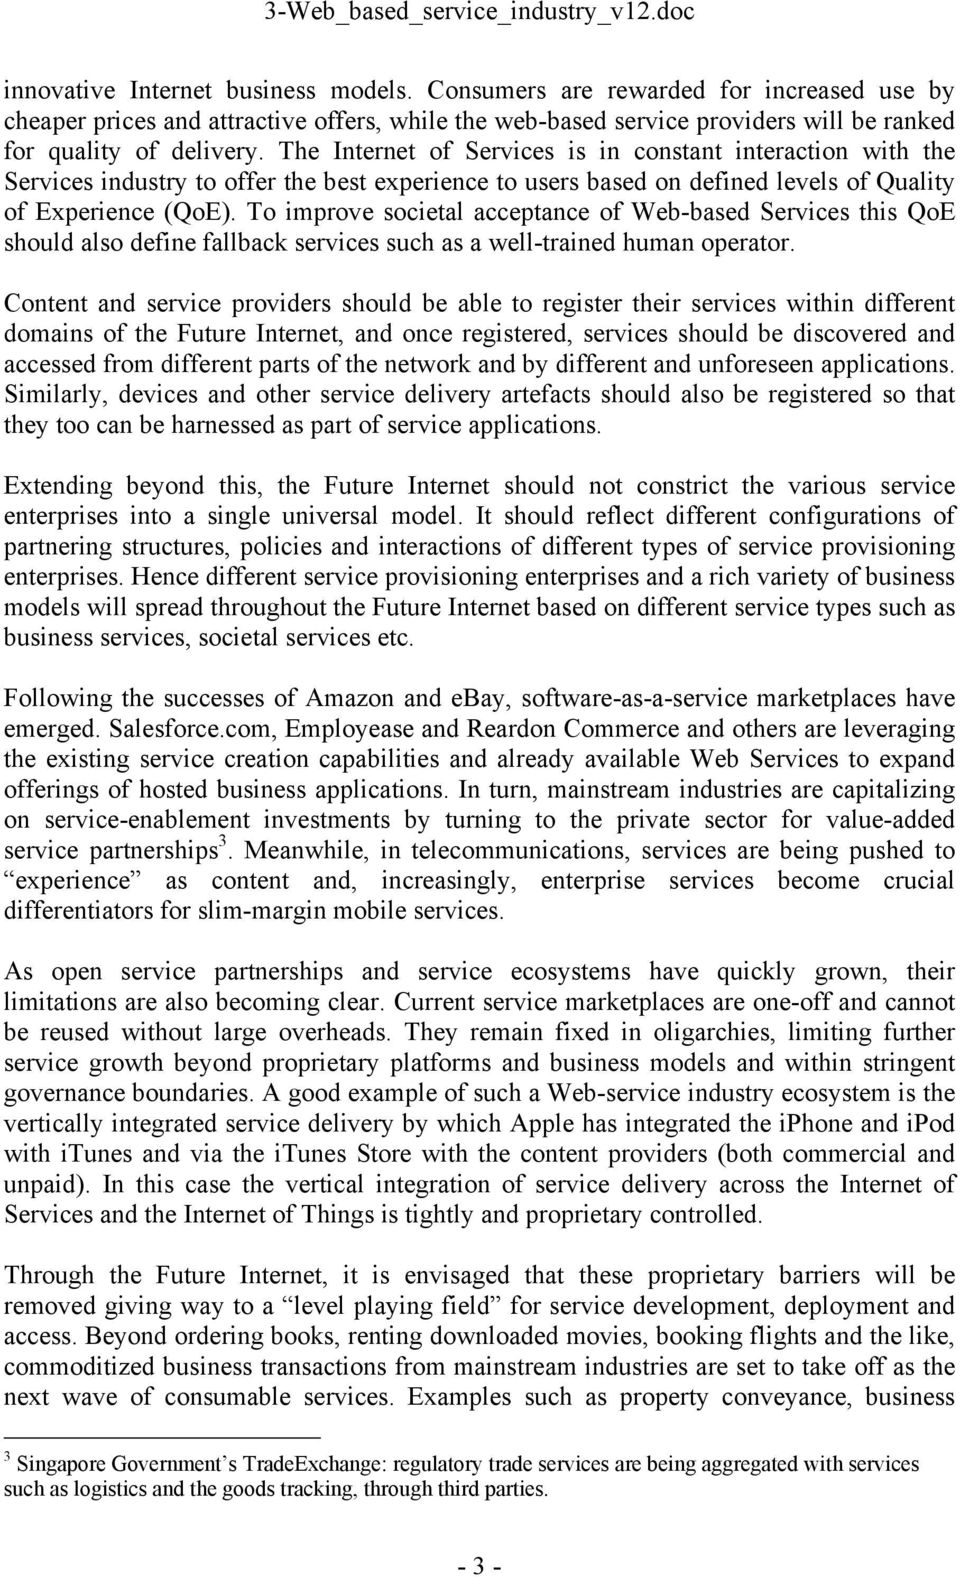 To improve societal acceptance of Web-based Services this QoE should also define fallback services such as a well-trained human operator.